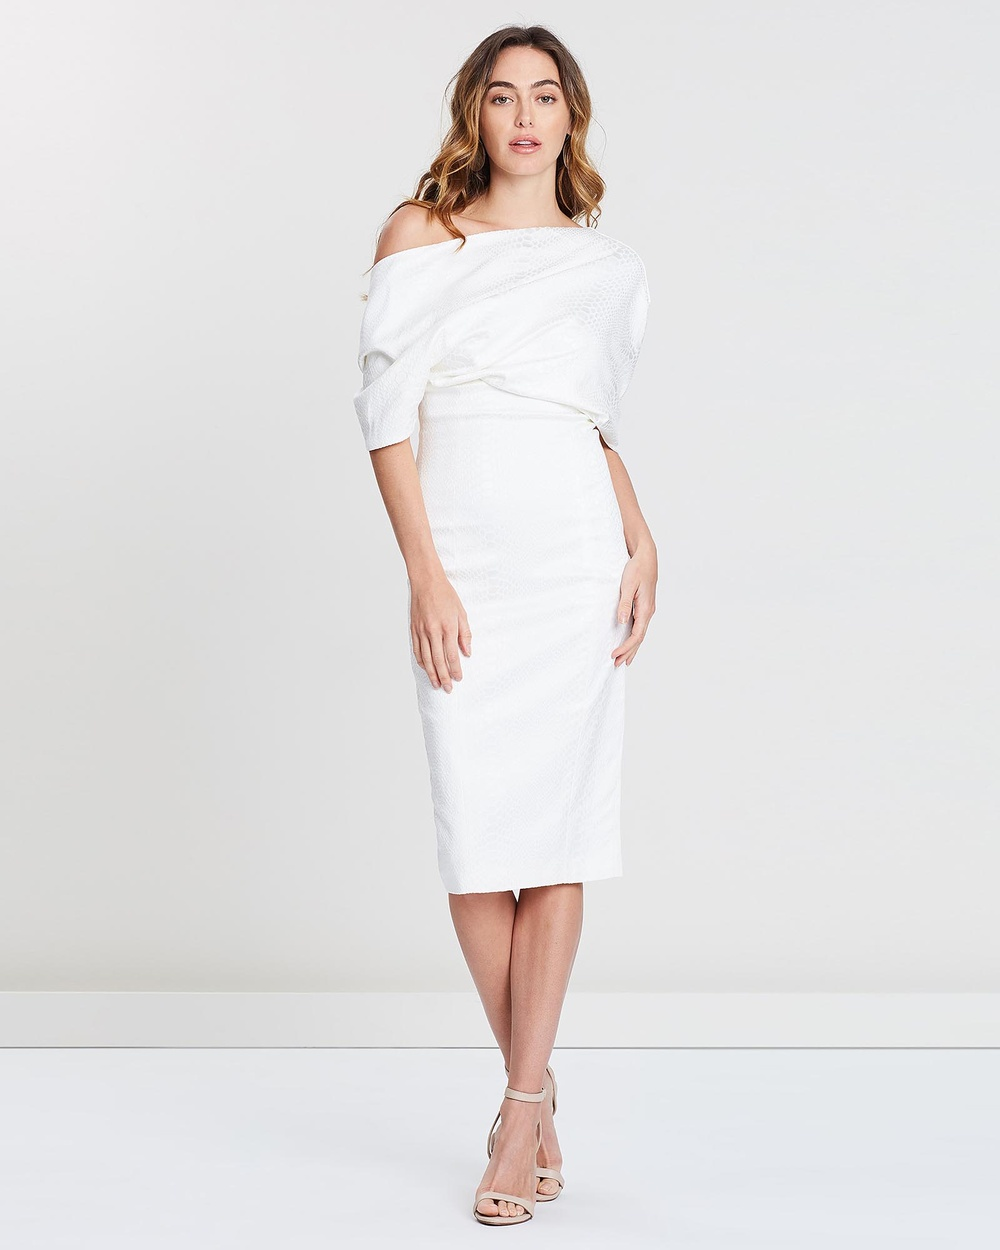 SANTINA-NICOLE White Freya Shawl Drape Dress